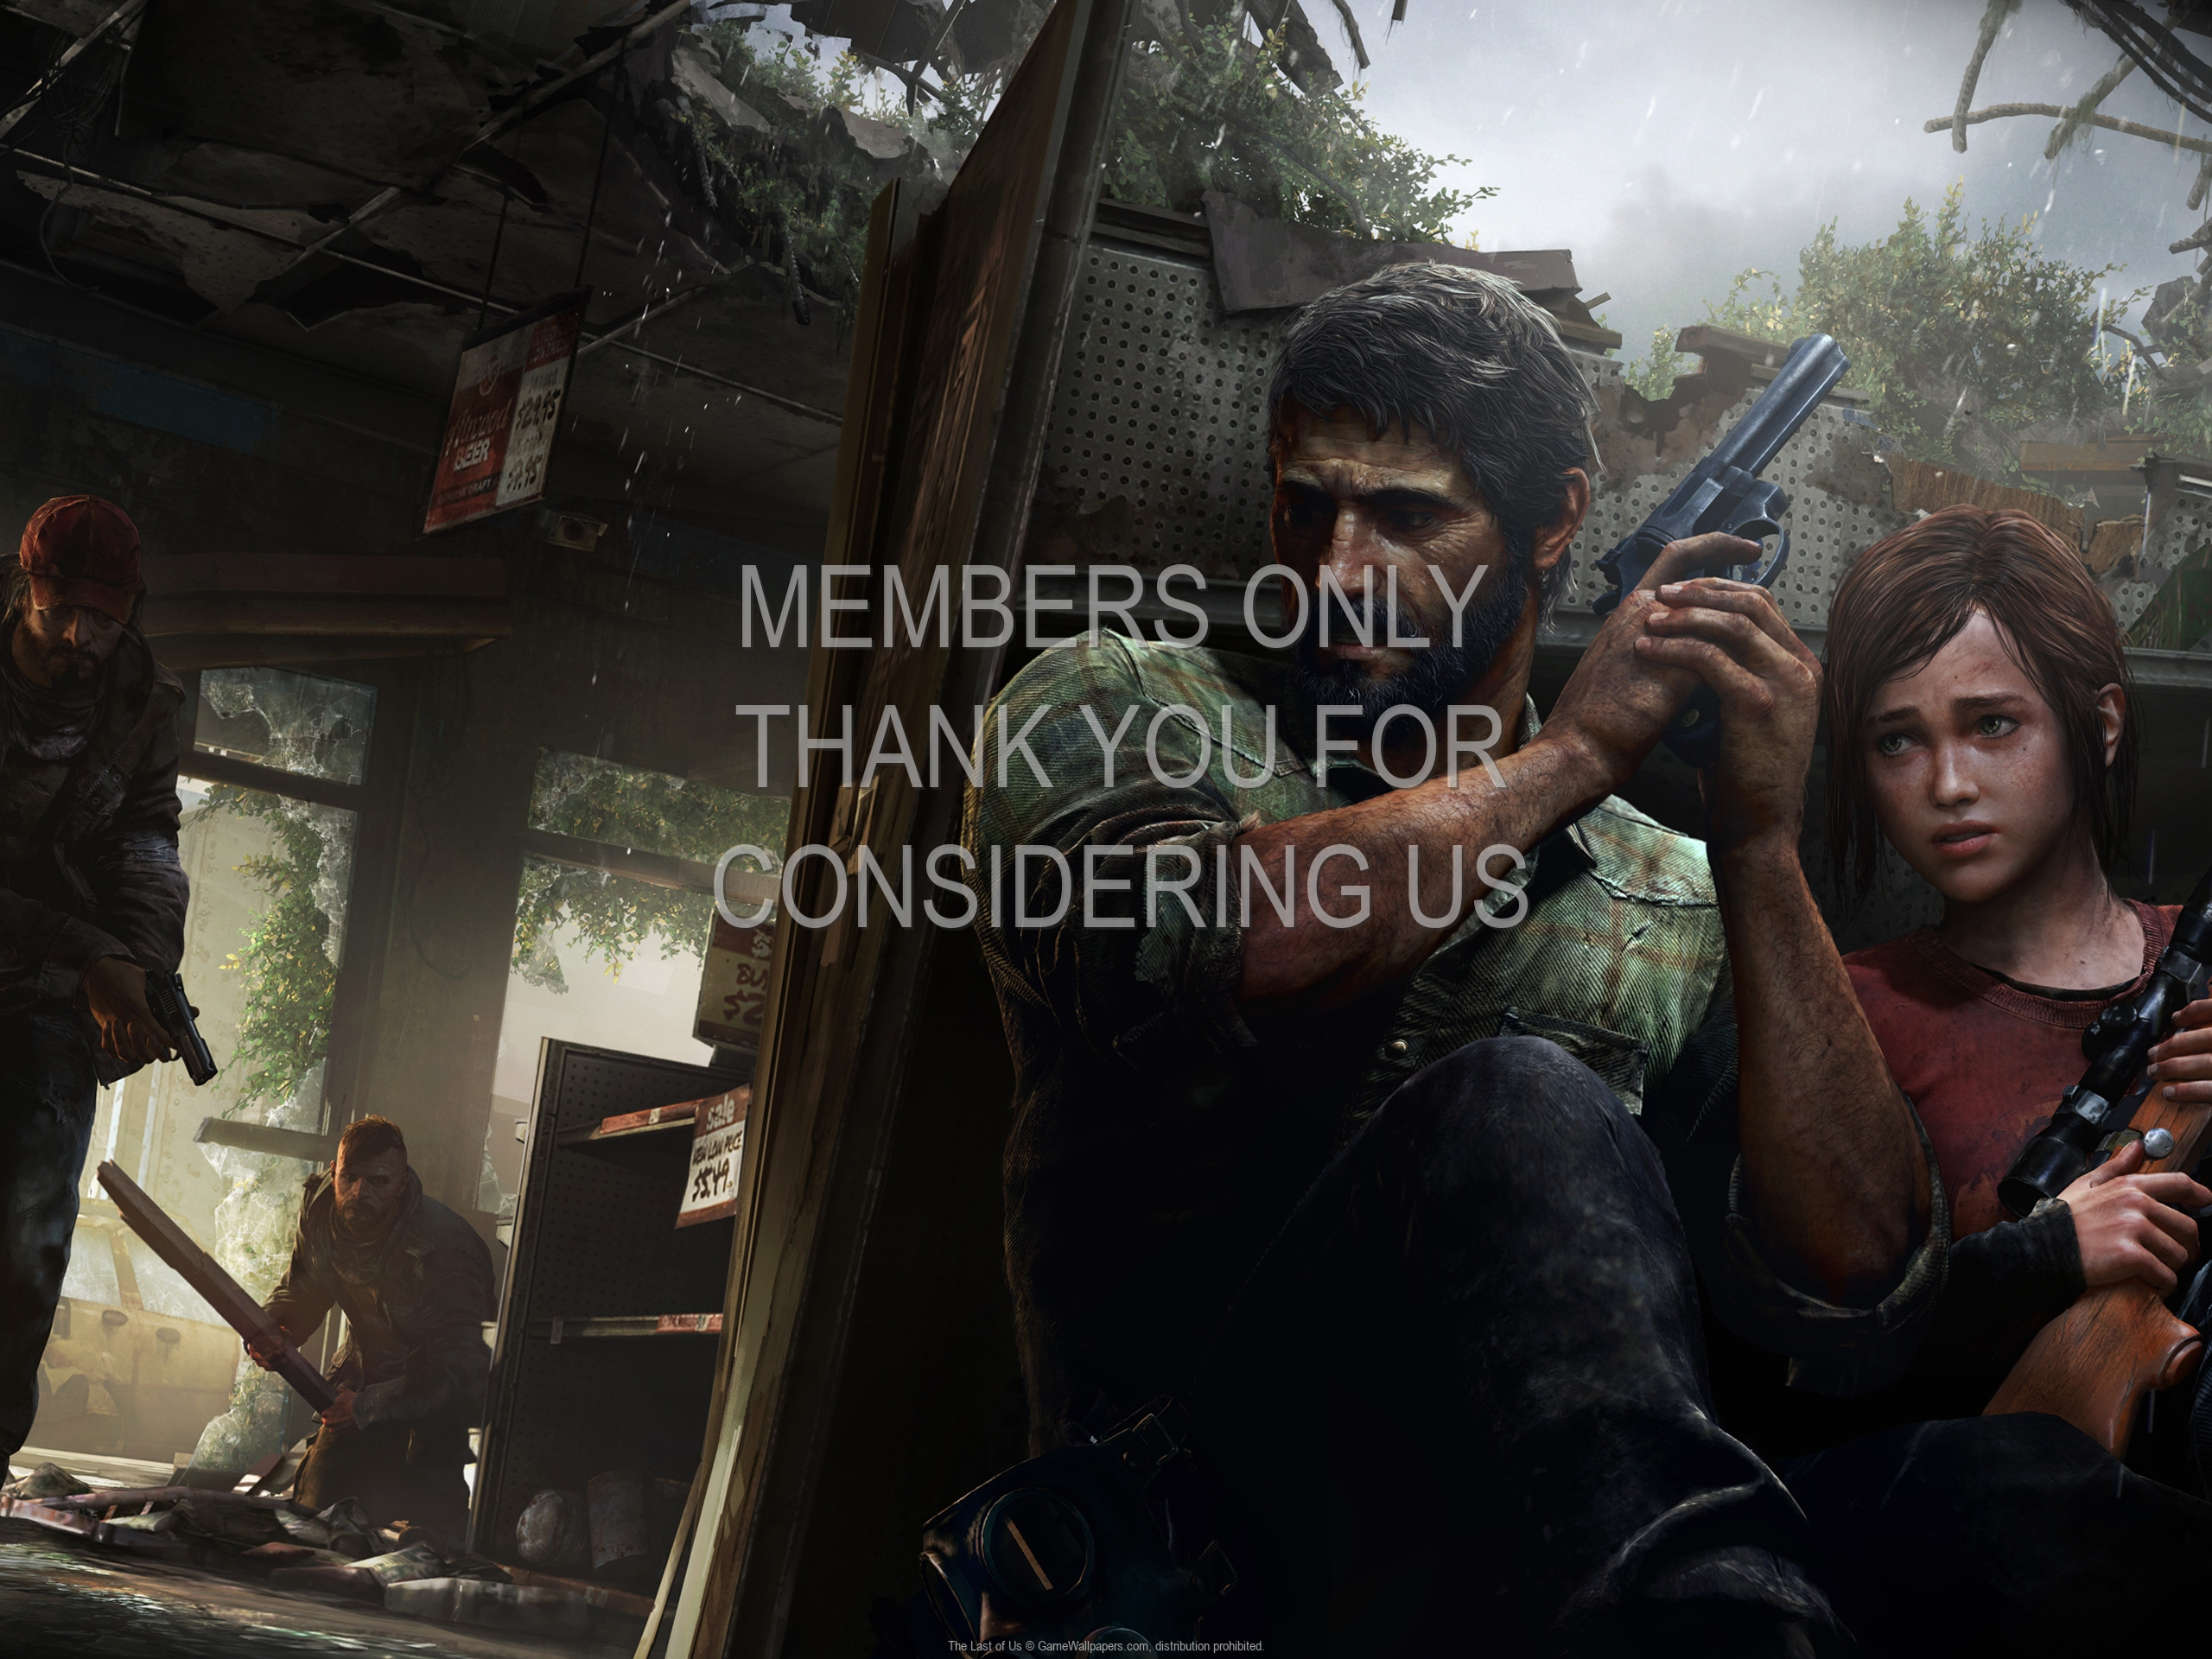 The Last of Us 1920x1080 Mobile wallpaper or background 10